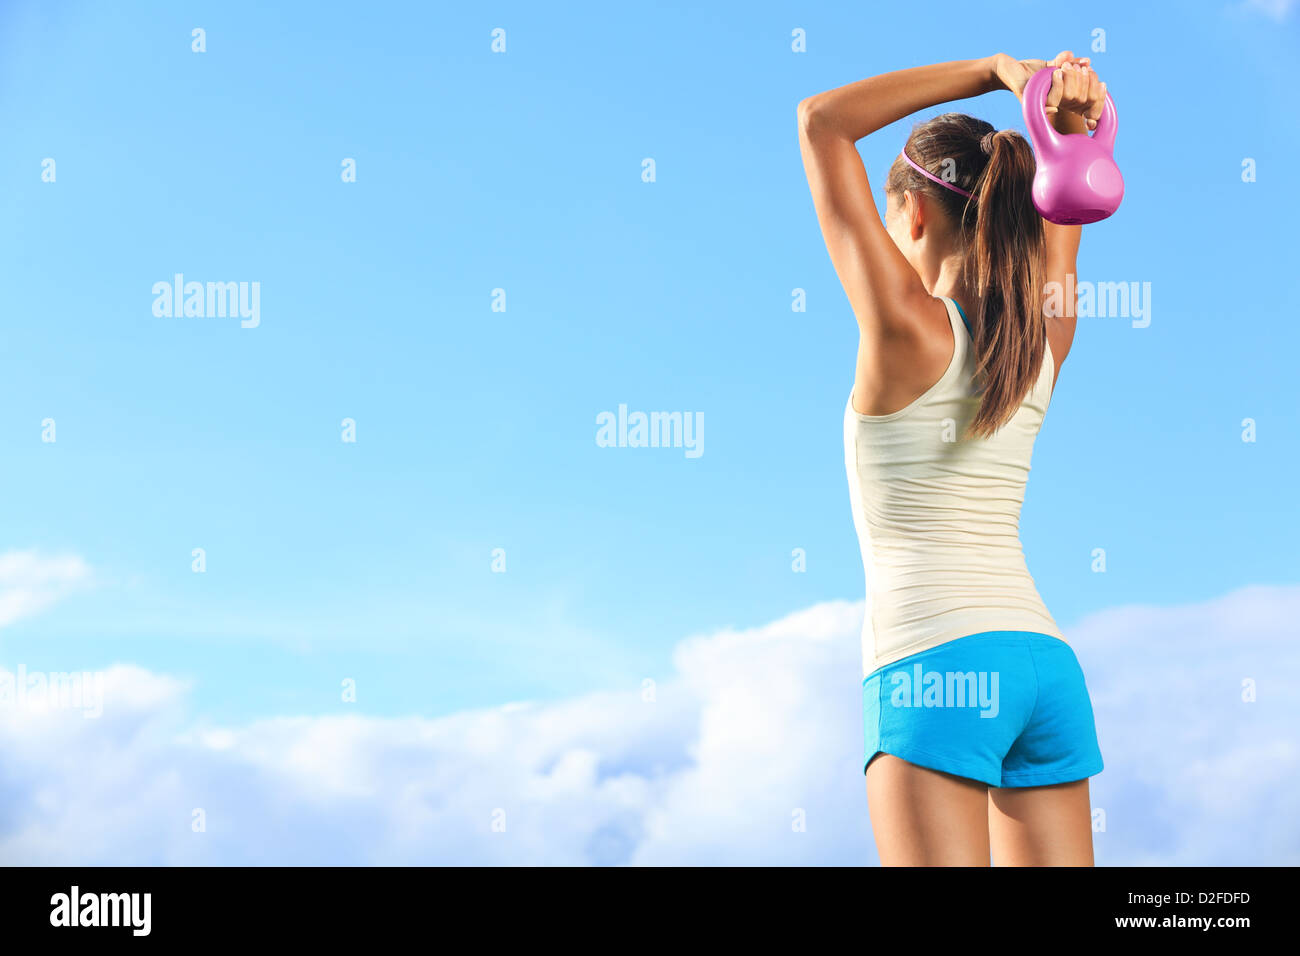 Back view of young fit woman using kettlebells outside during crossfit strength training against sky with copyspace - Stock Image